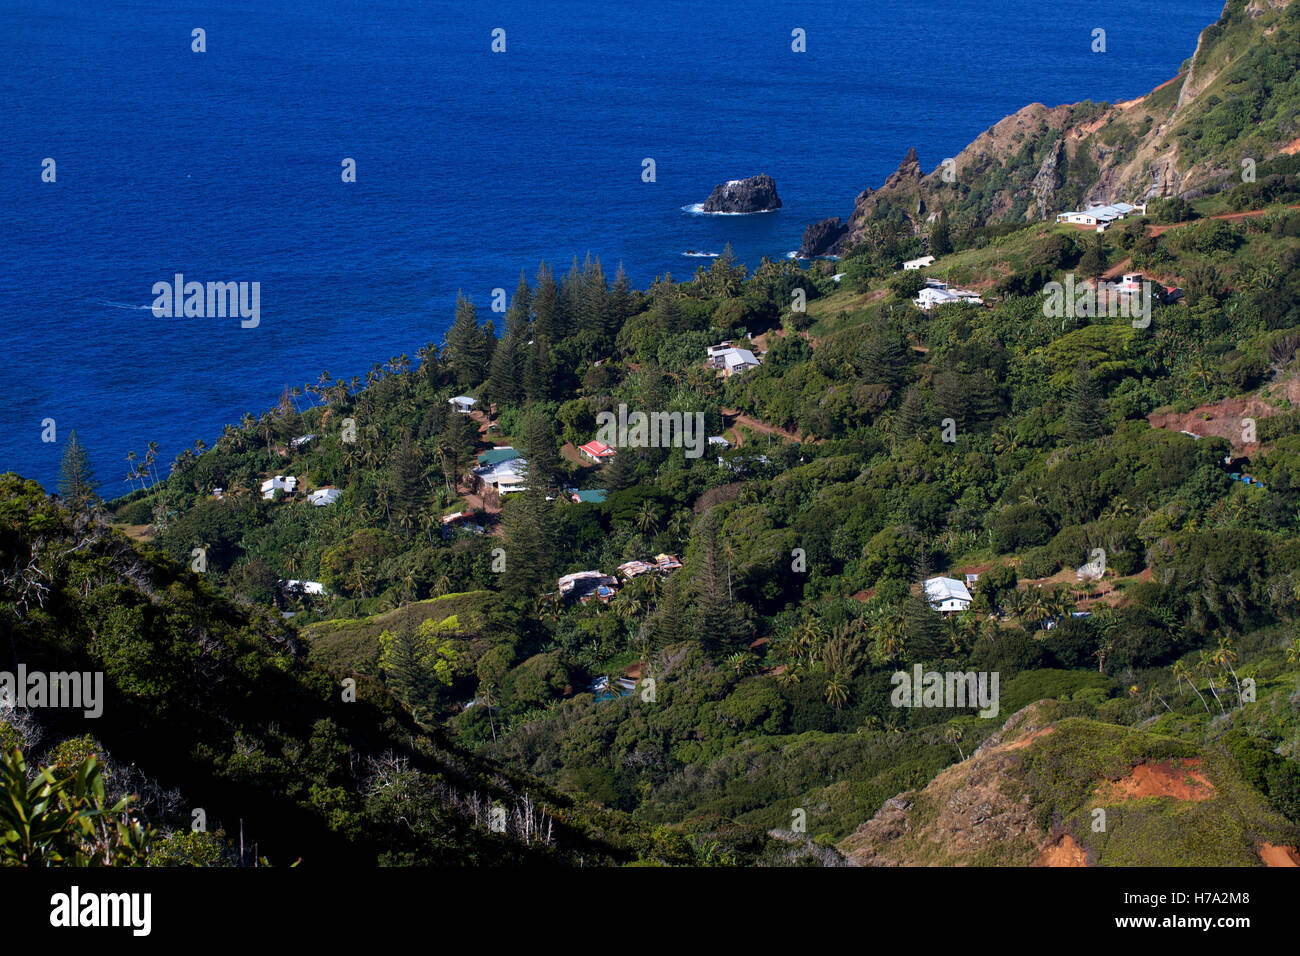 On Pitcairn Island High Resolution Stock Photography And Images Alamy